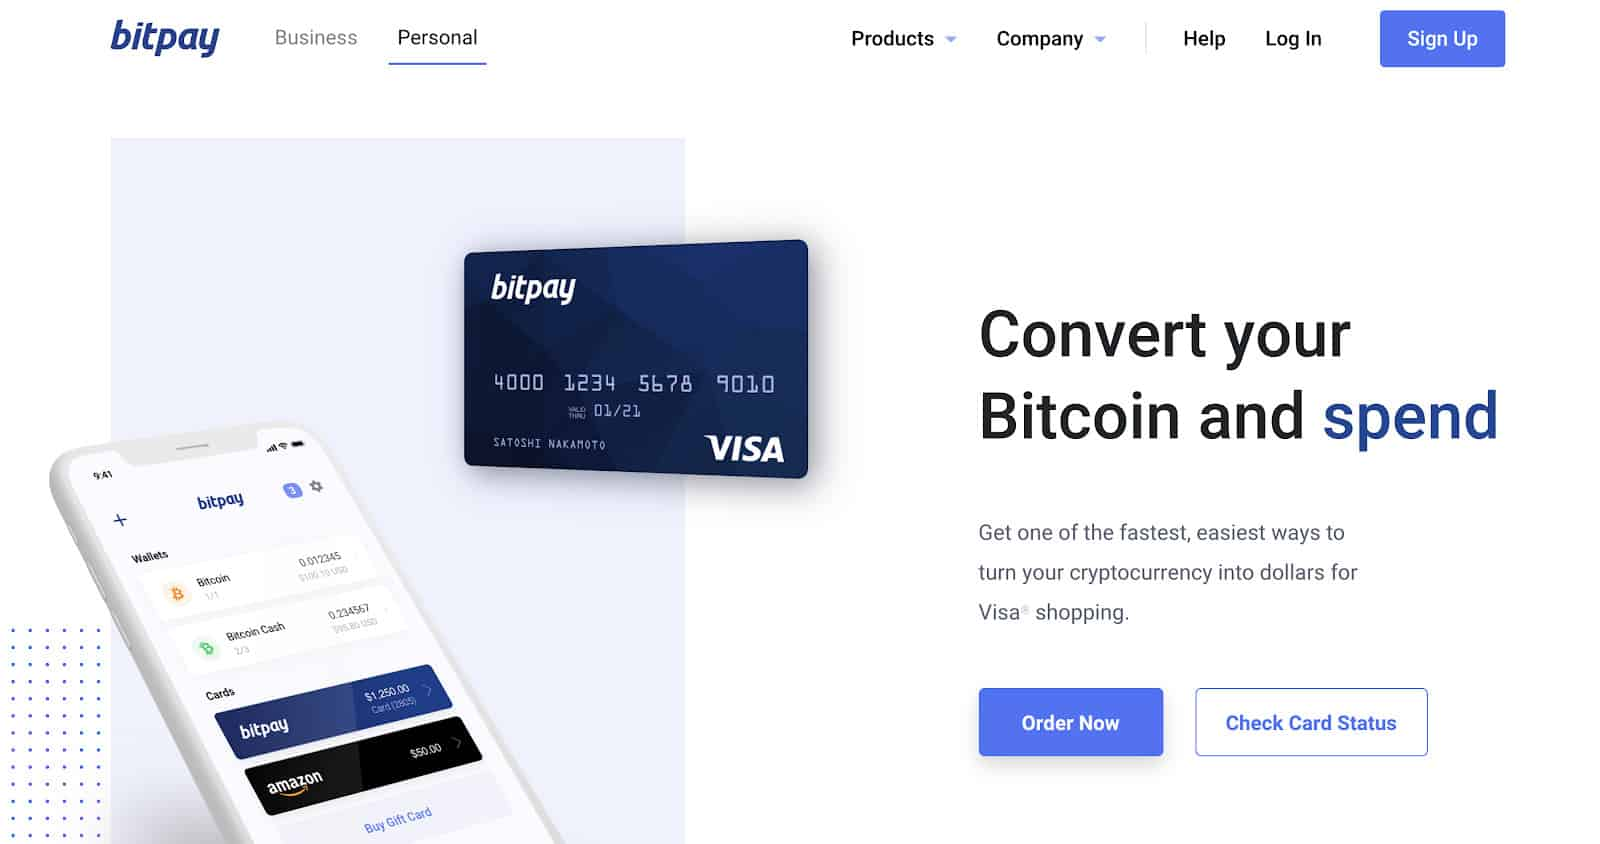 Best Bitcoin Debit Cards - Complete Guide for 2019 8